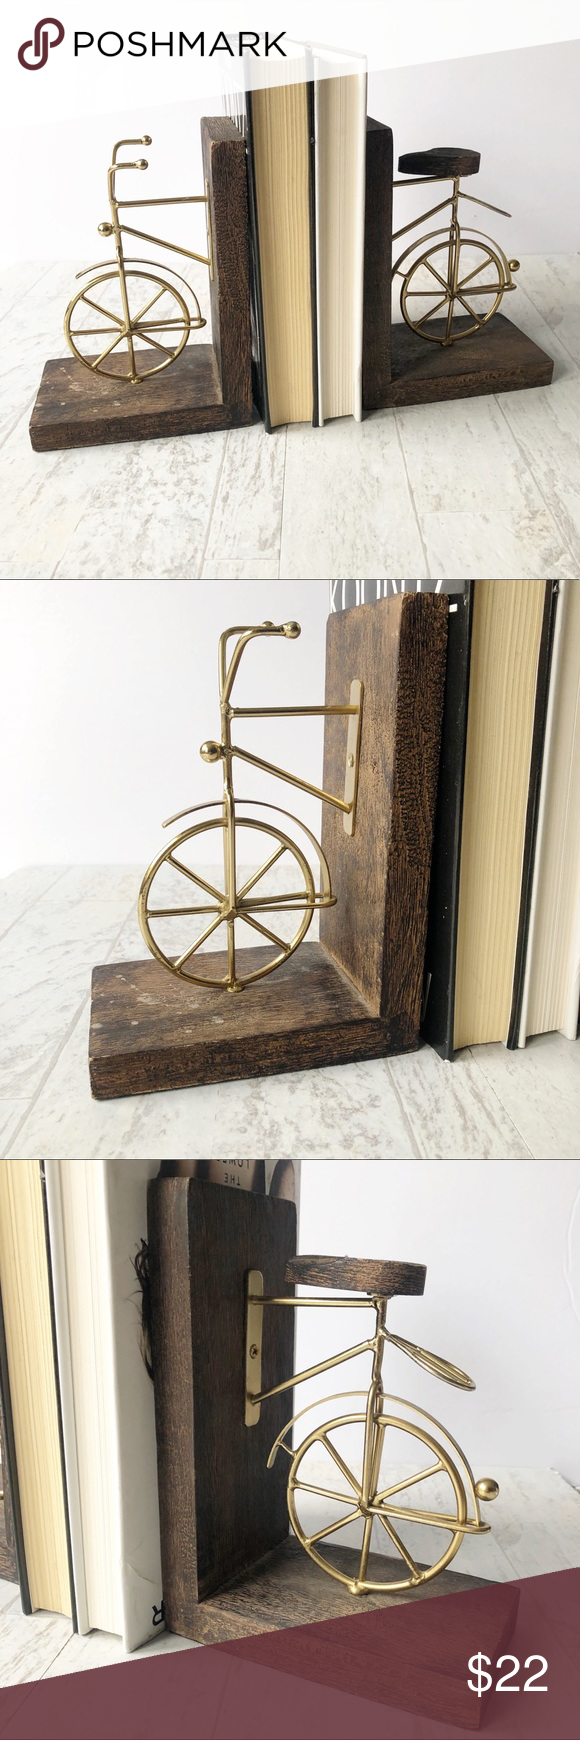 Bicycle Bookends Bookends Accent Decor Home Goods